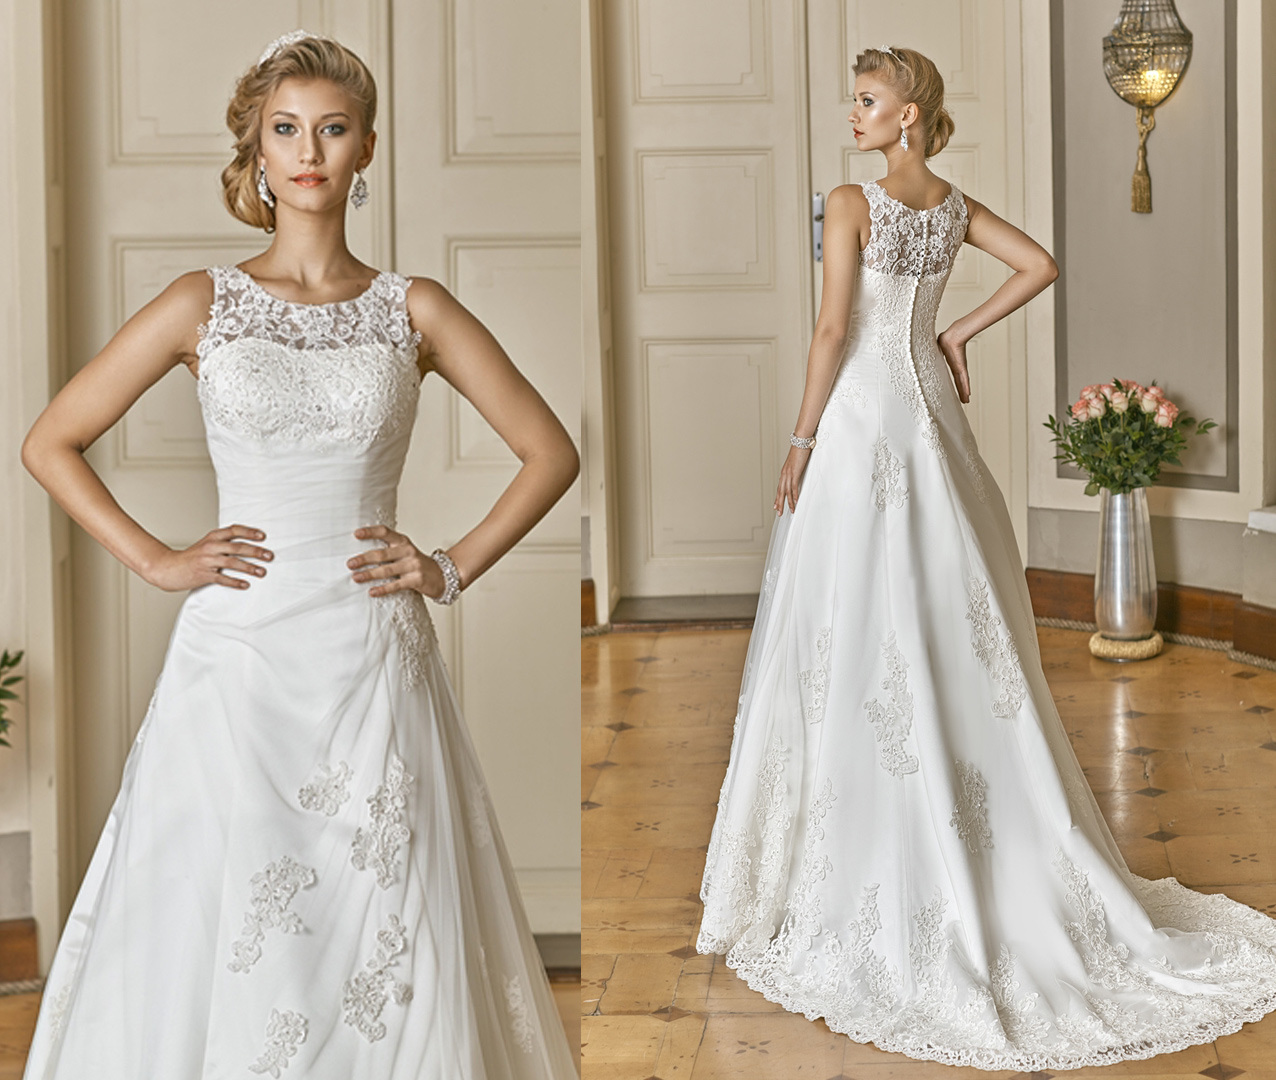 Soft and Flowing Boat Neck Wedding Gown